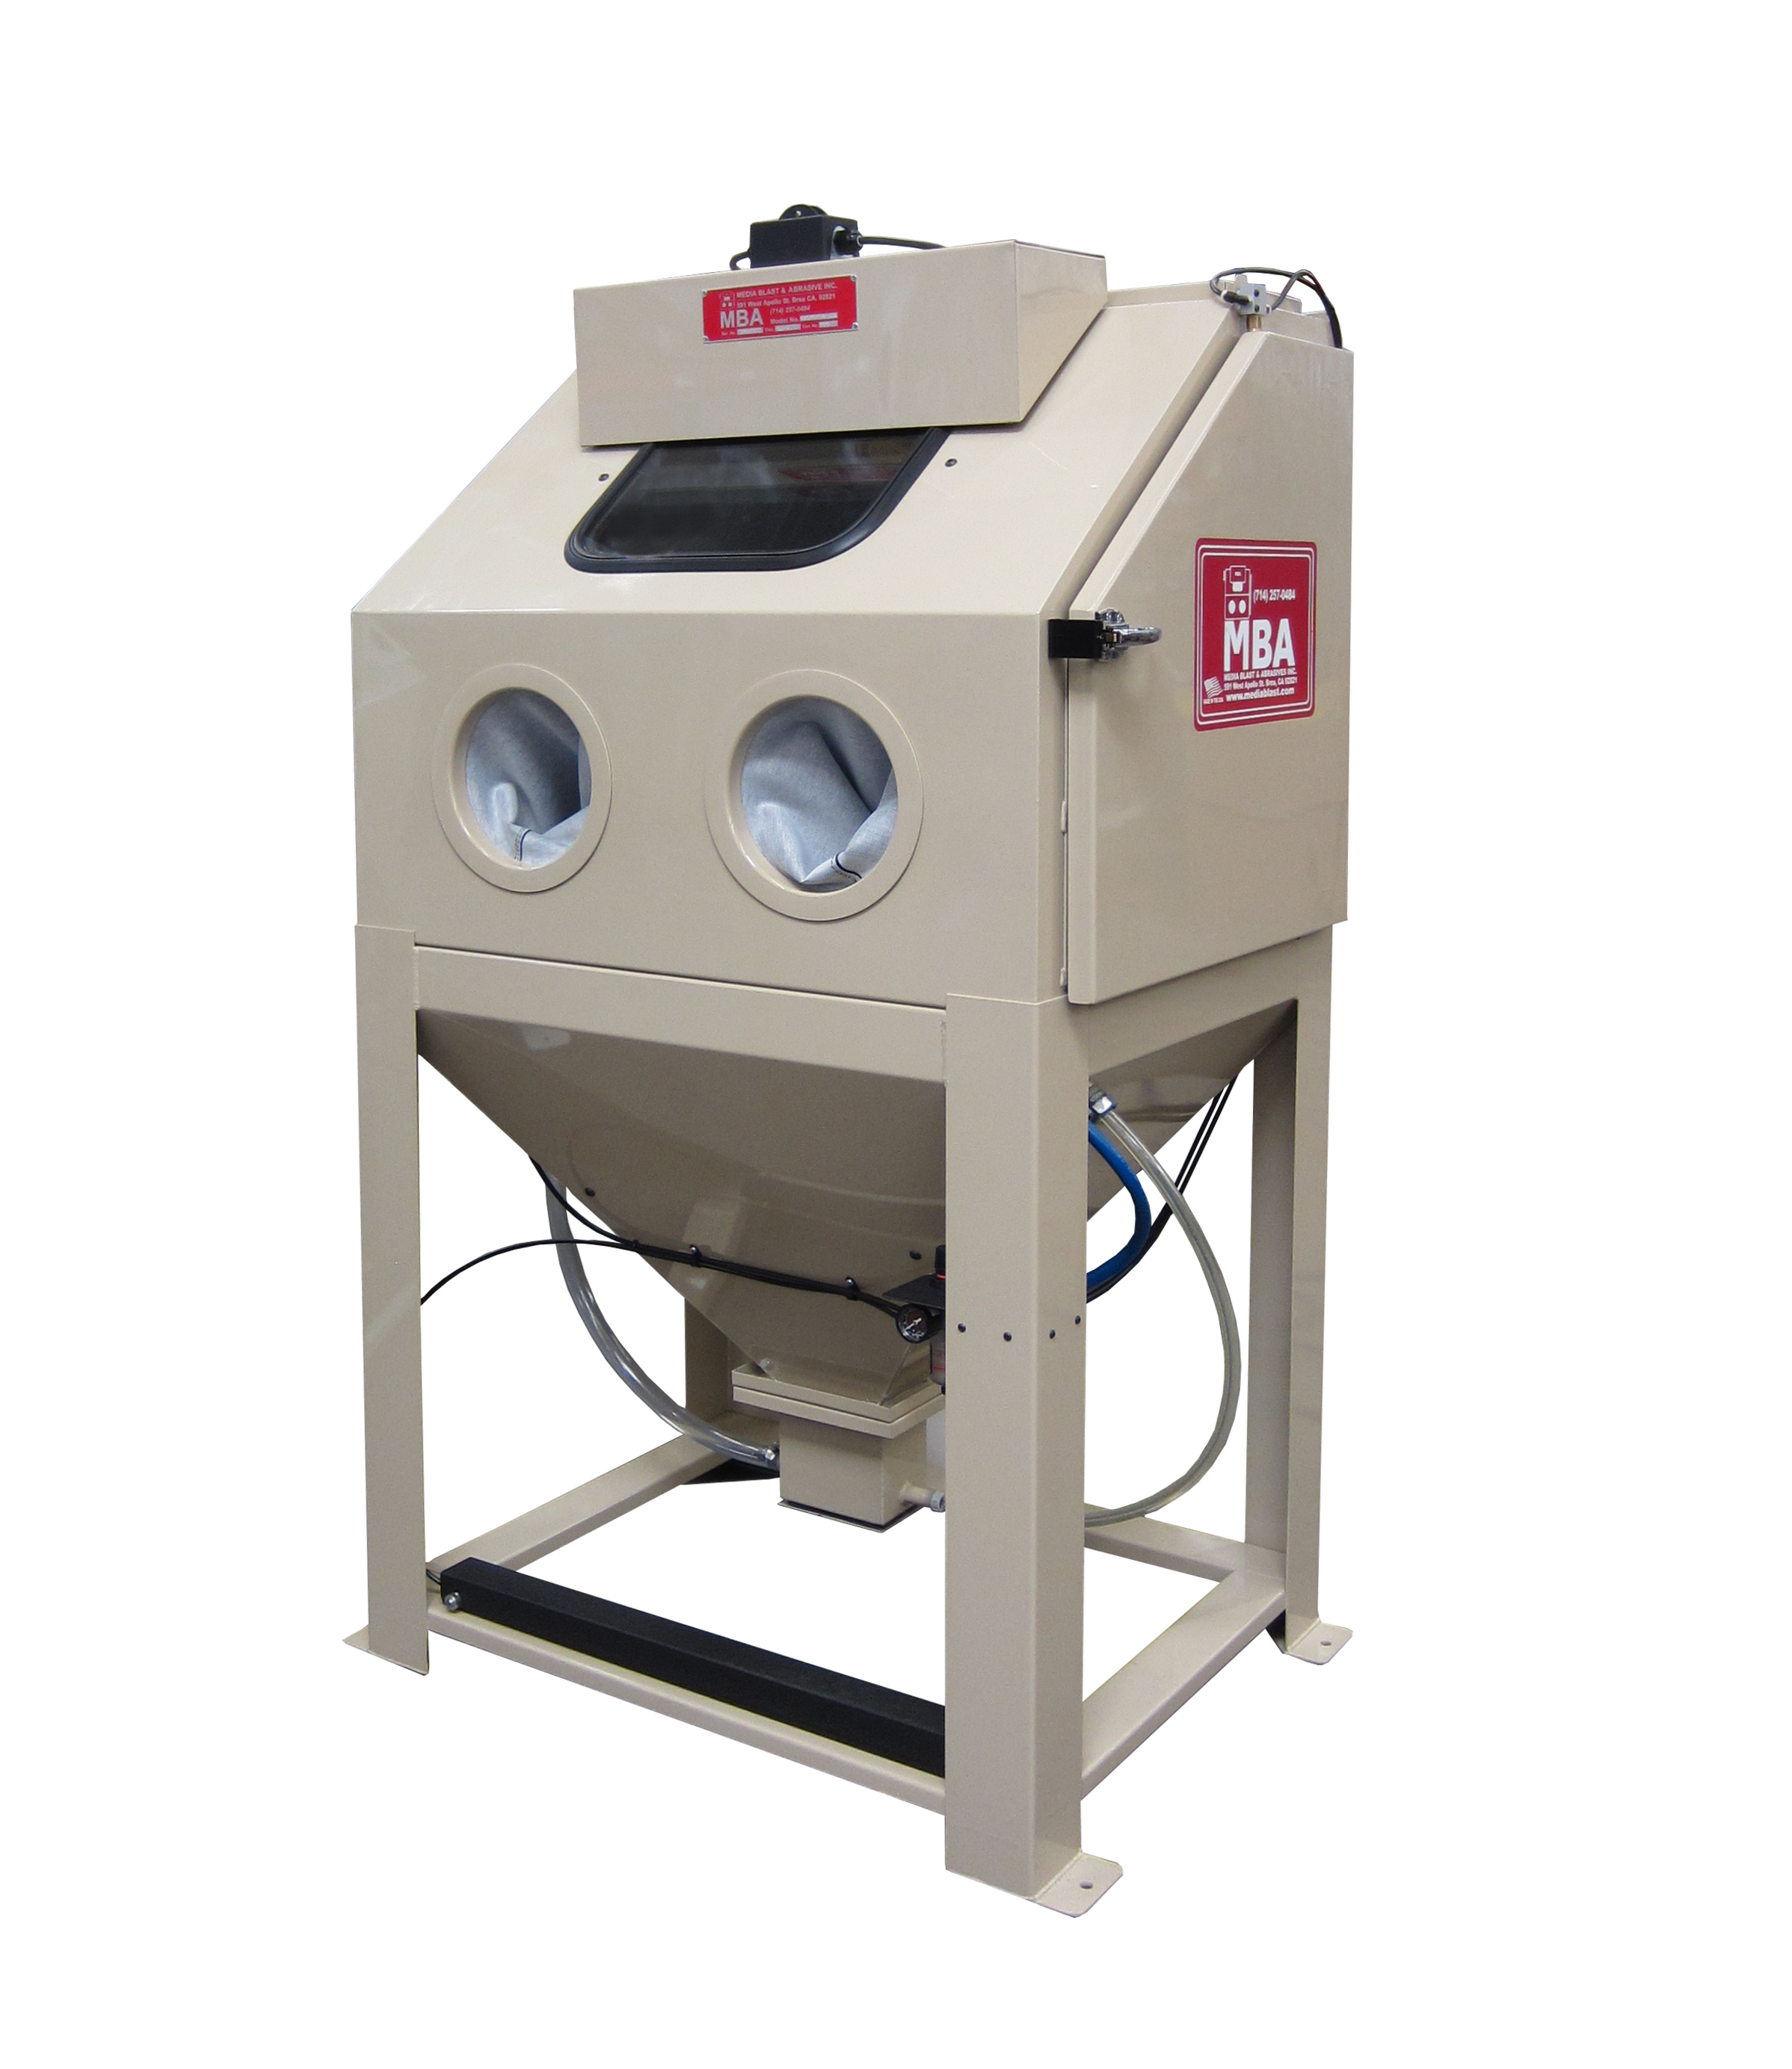 this blast cabinet comes with internal abrasive storage separator reclaimer and many included standard features